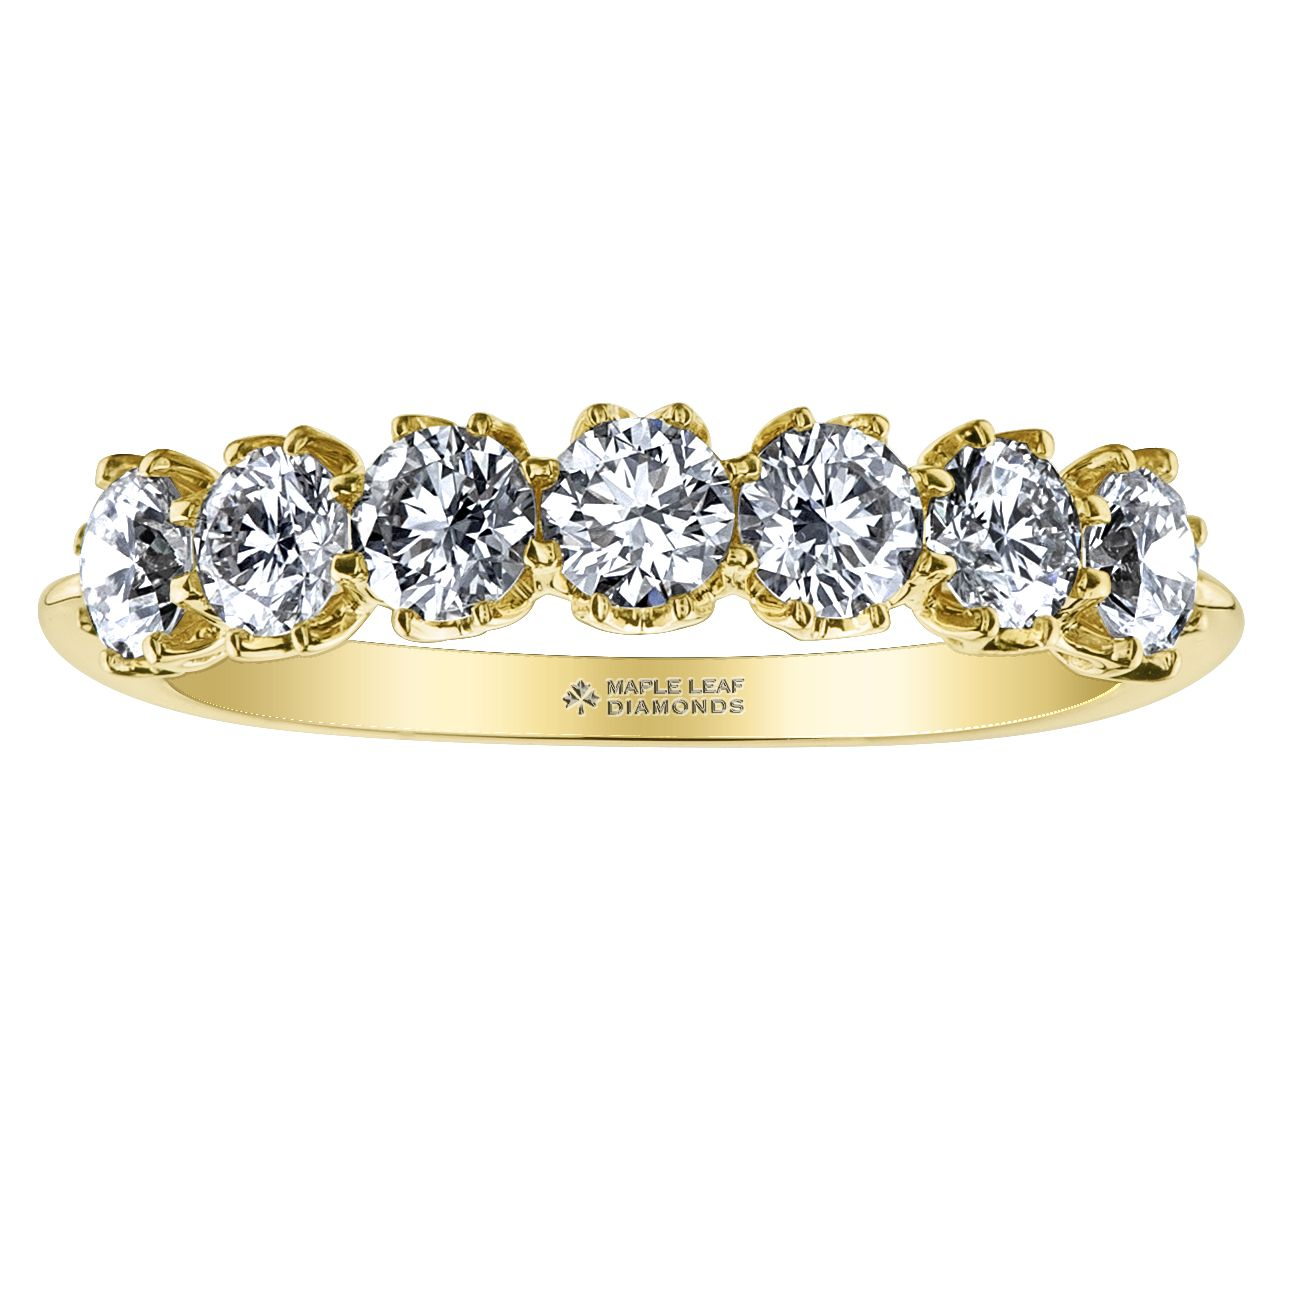 7 Canadian Diamond Anniversary Band Set in Yellow Gold 1